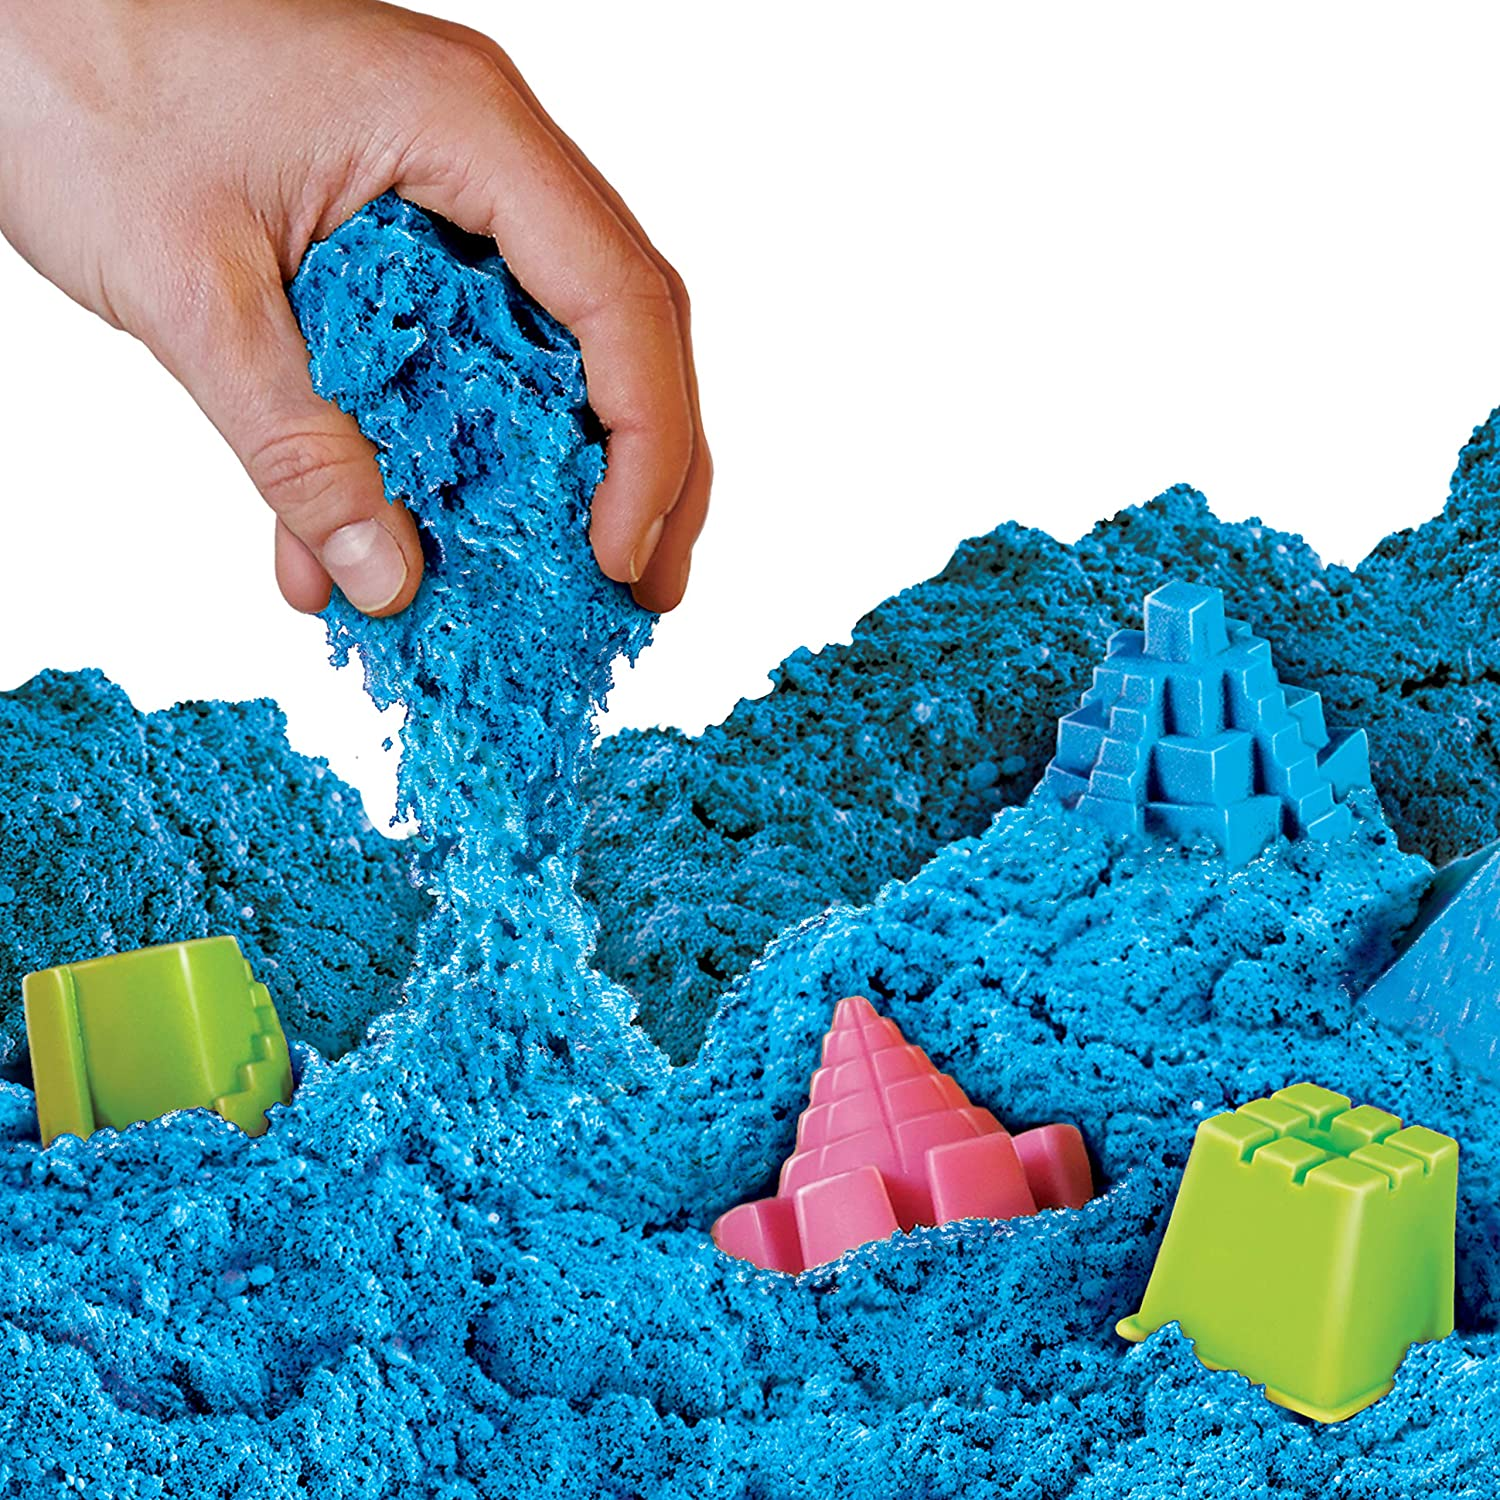 NATIONAL GEOGRAPHIC Non-Toxic Kinetic Sand For Kids